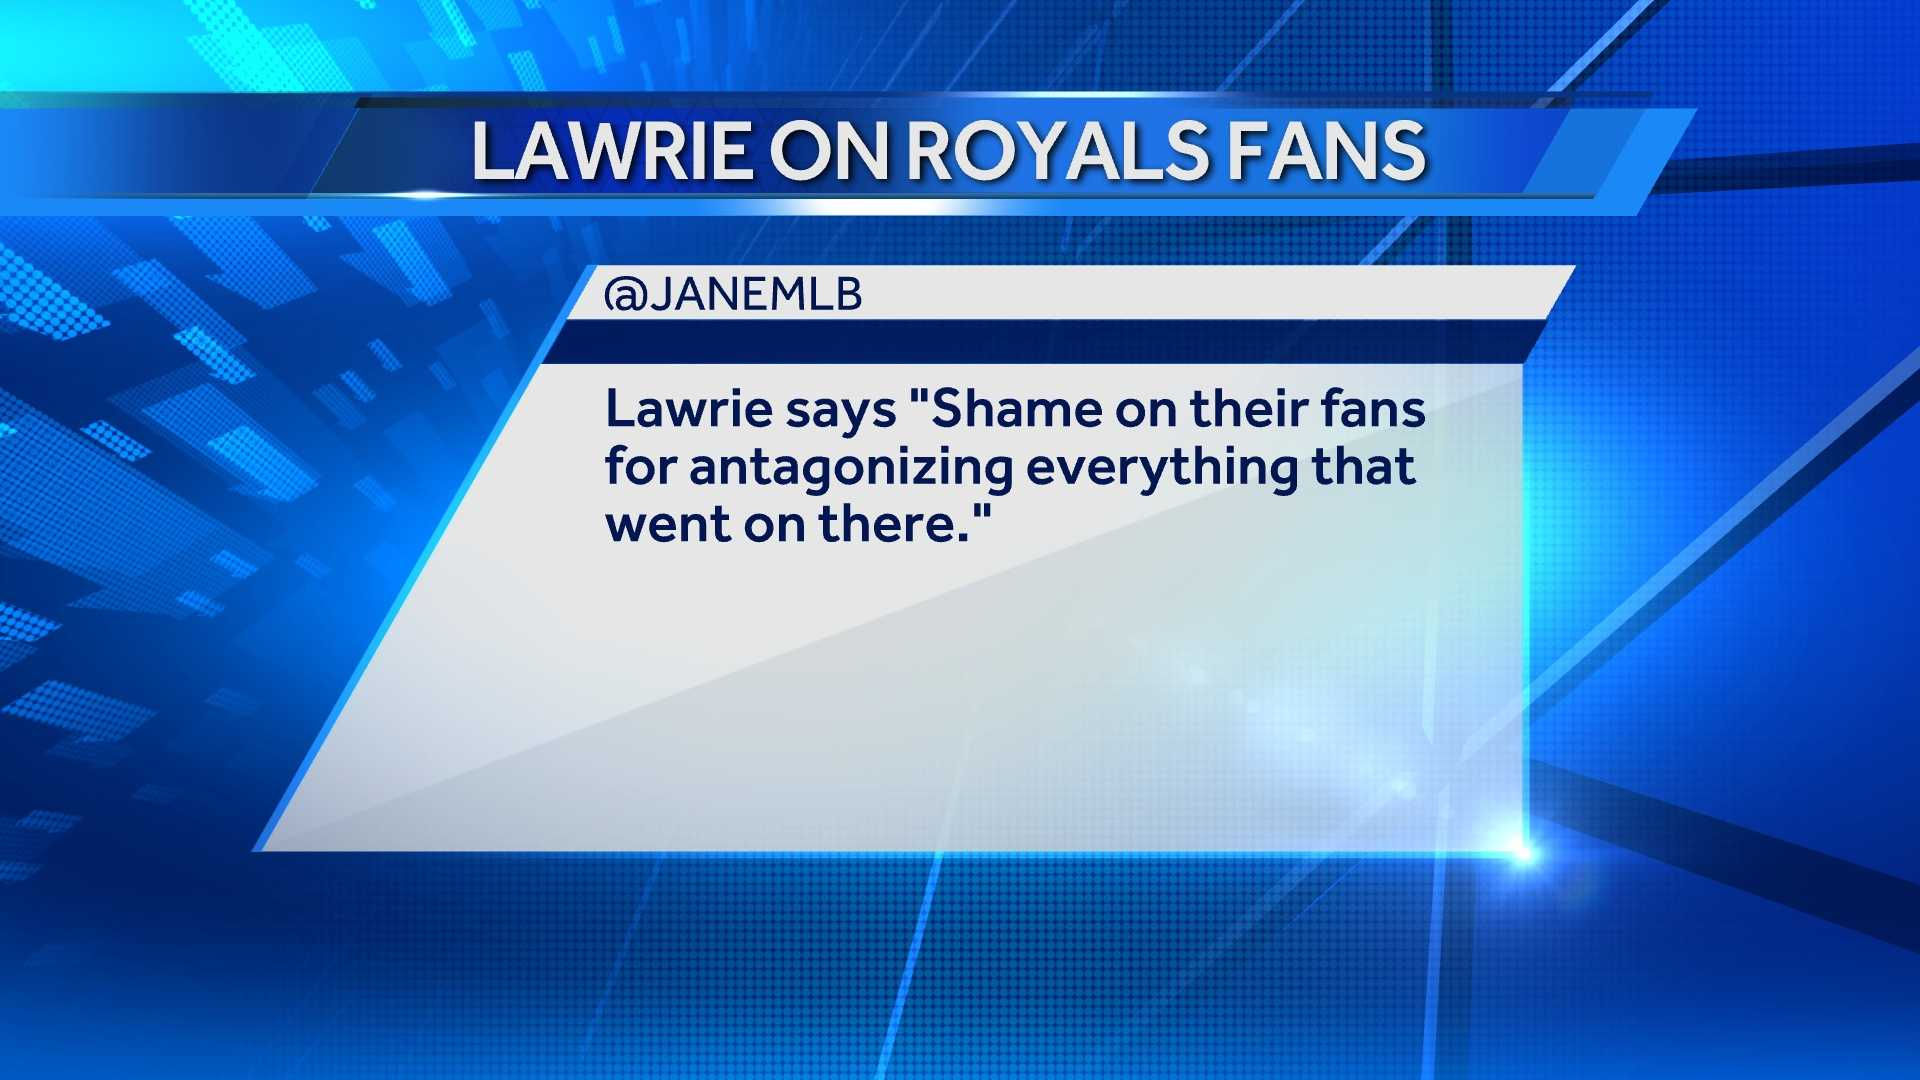 Lawrie told MLB.com that Herrera got what he deserved. And he thinks Royals' fans are partially to blame for what happened at Kauffman Stadium.